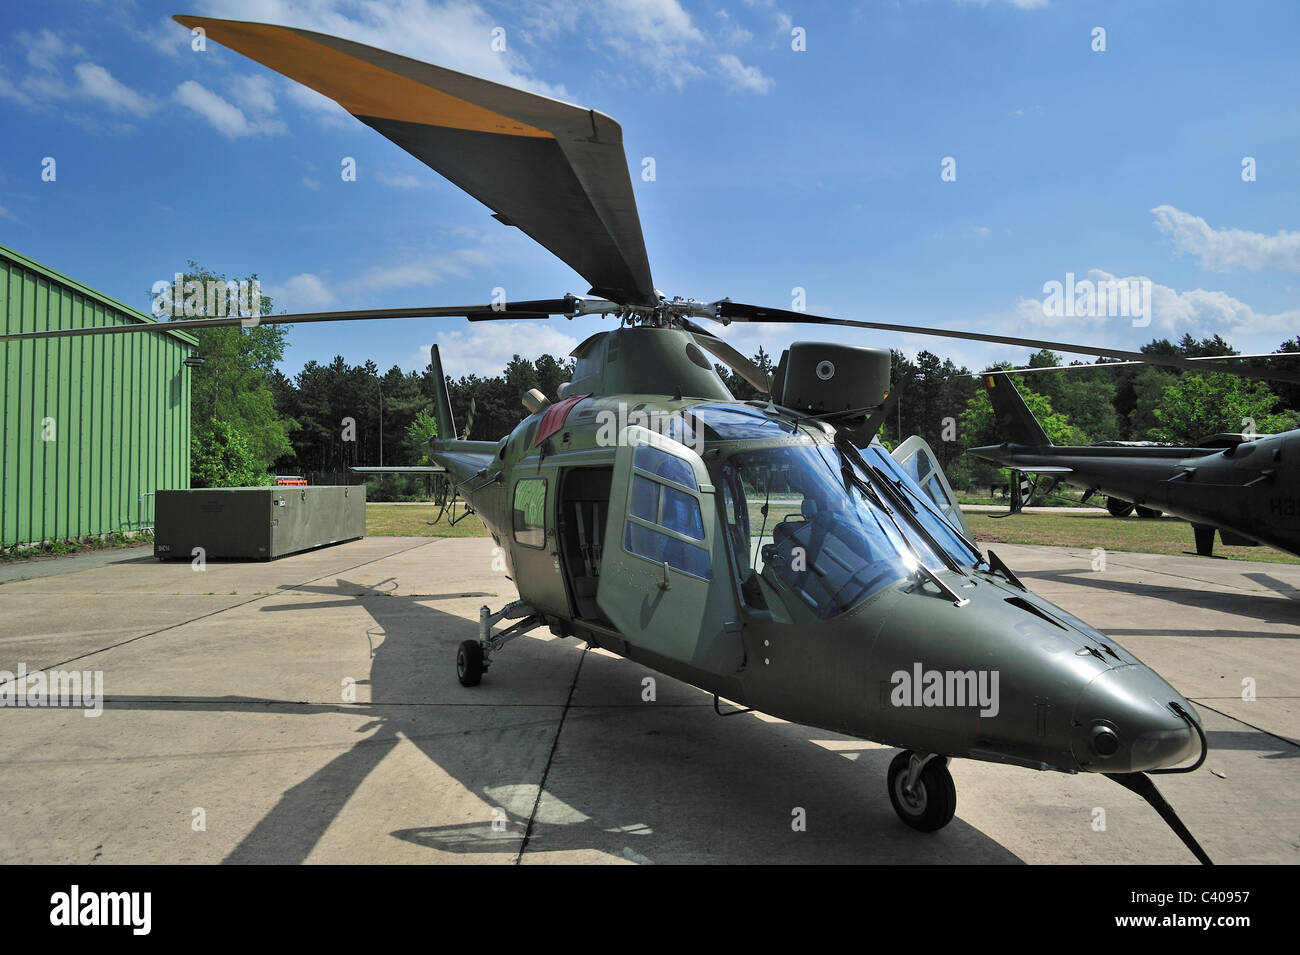 A-109 Agusta / AgustaWestland AW109 helicopter of the Belgian Air Component, Belgium - Stock Image